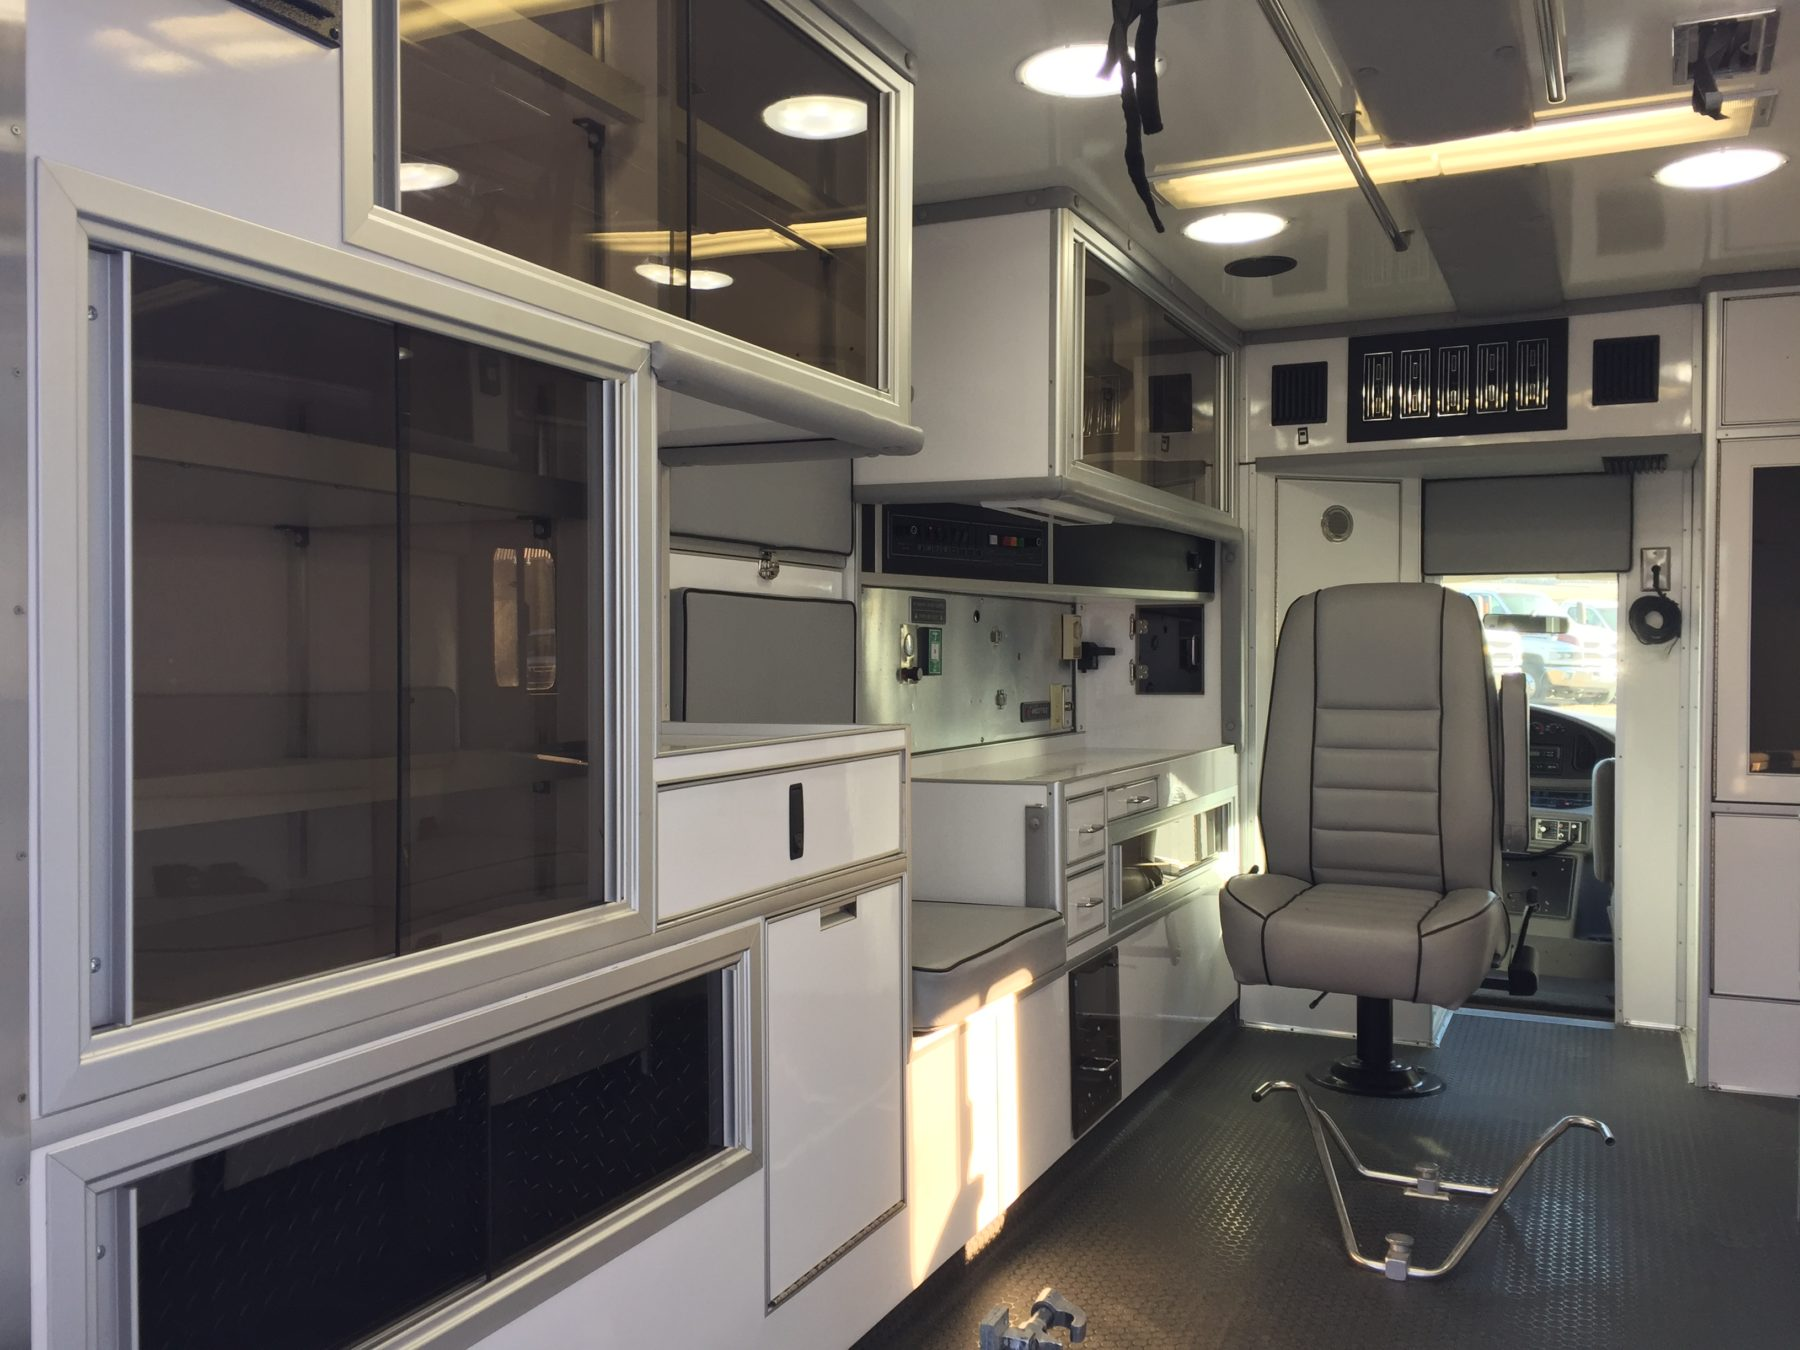 2000 Ford E450 Type 3 Ambulance For Sale – Picture 8